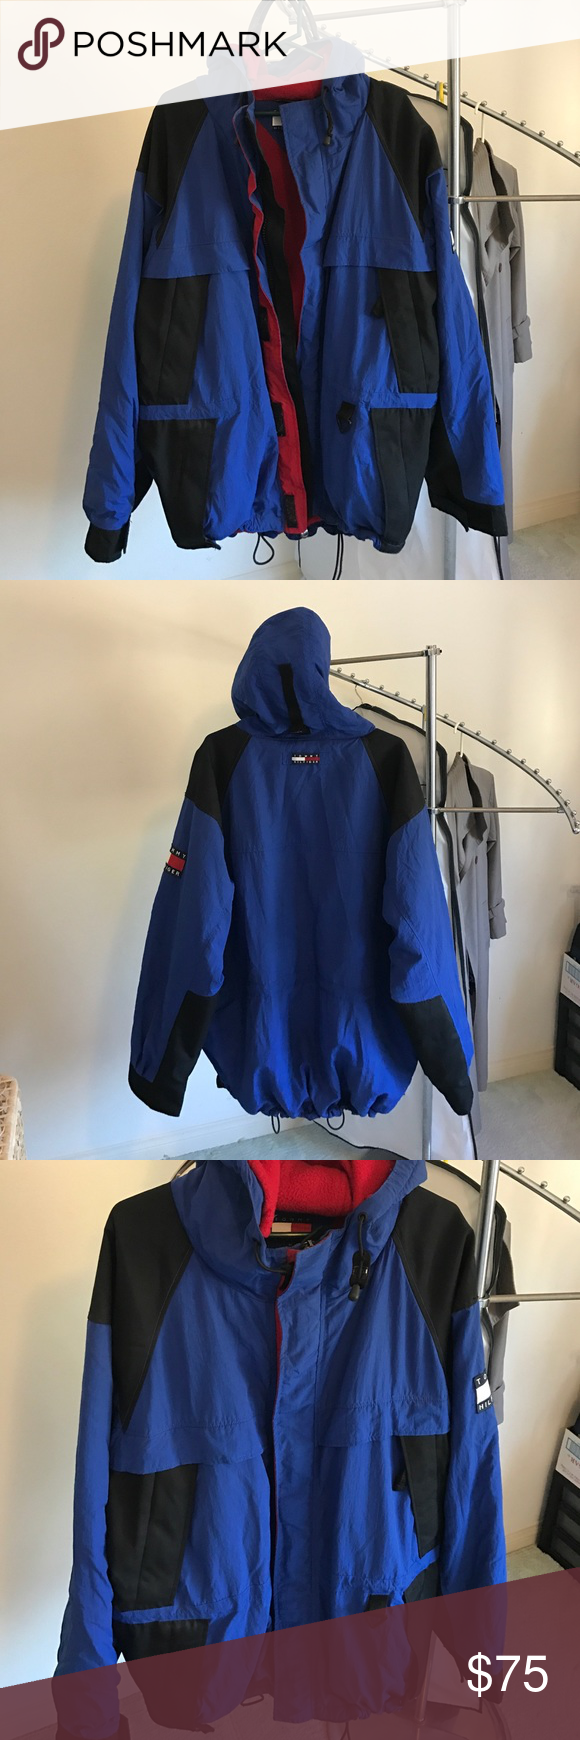 Tommy hilfiger vintage fleecelined hooded jacket d tommy